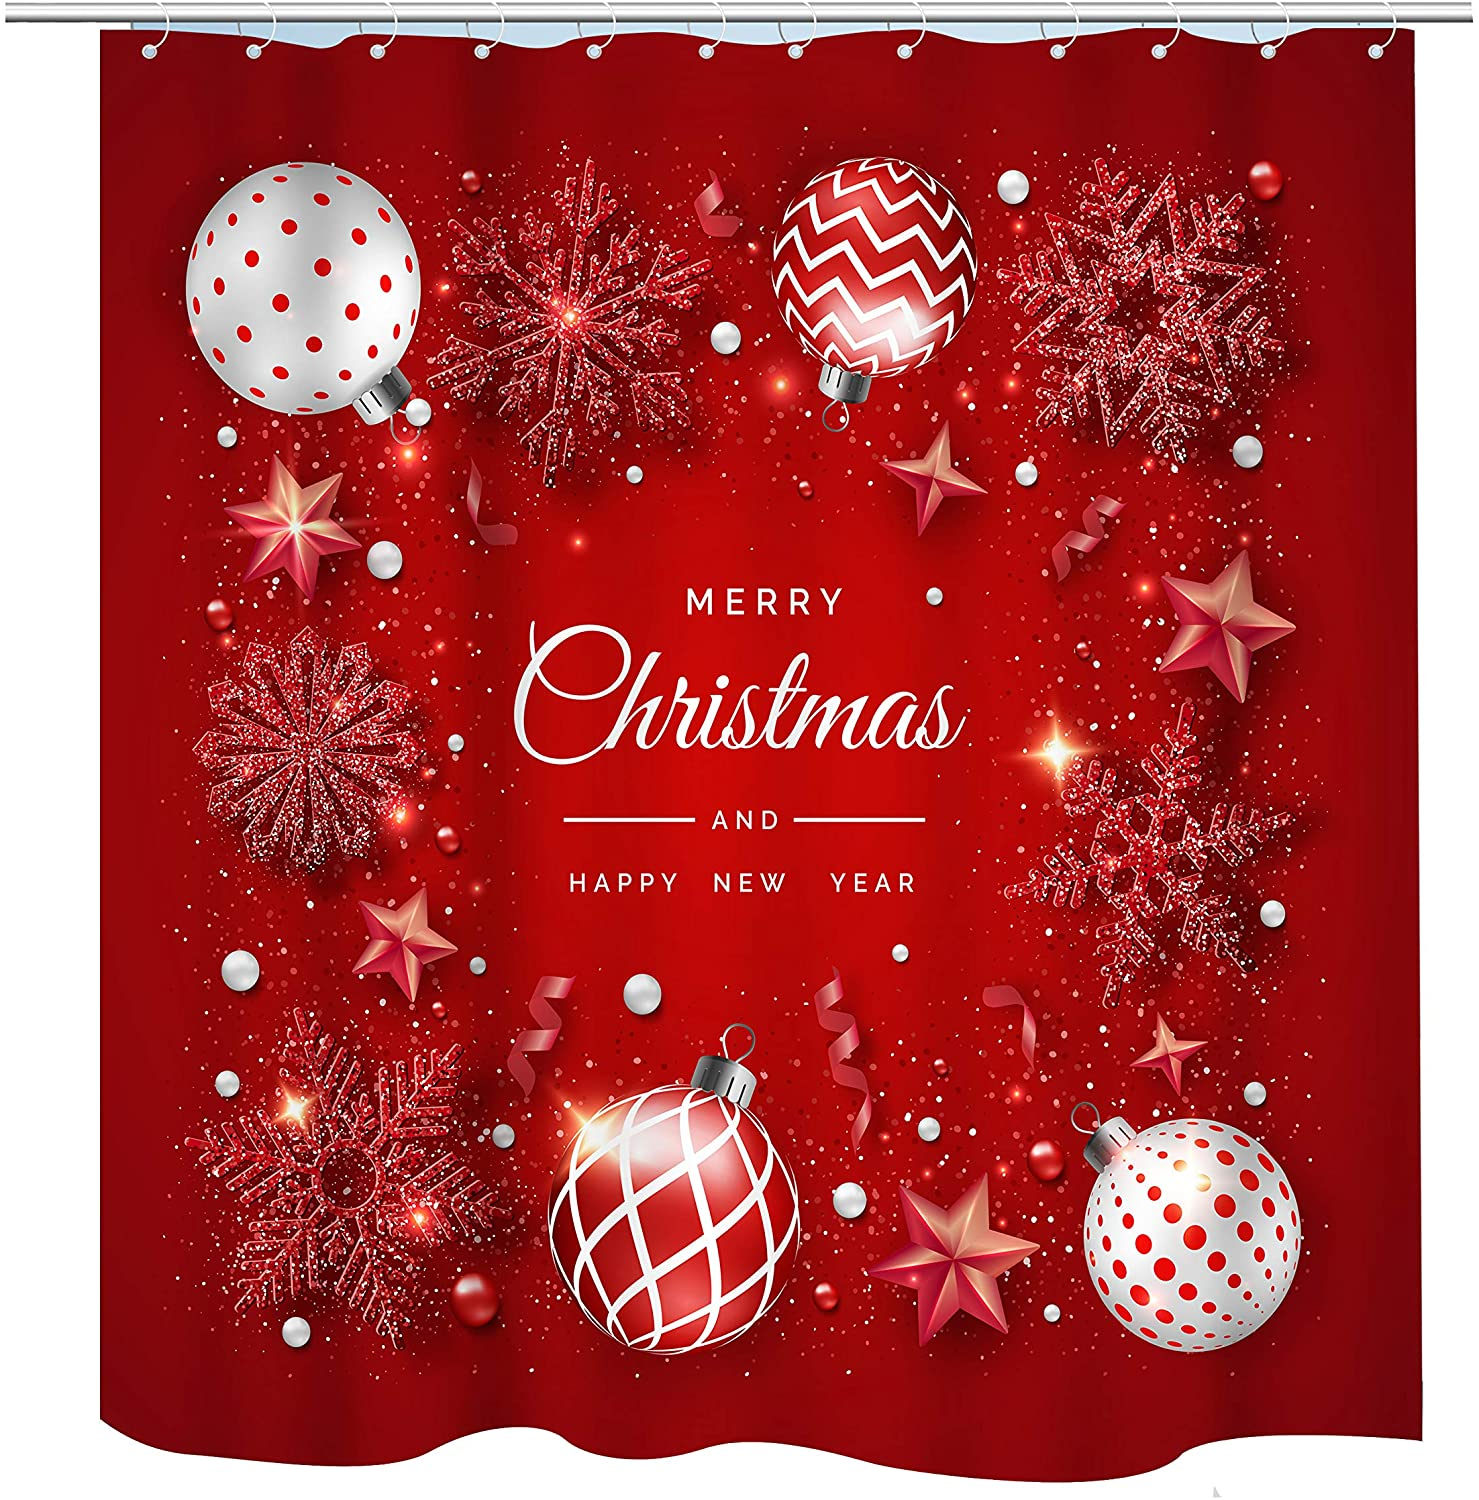 BECAN Merry Christmas Christmas Shining Snowflakes Ribbons and Colorful Balls New Year and Christmas on red Background Polyester Fabric Bathroom Shower Curtain 72X72 Inches with 12pcs Hooks